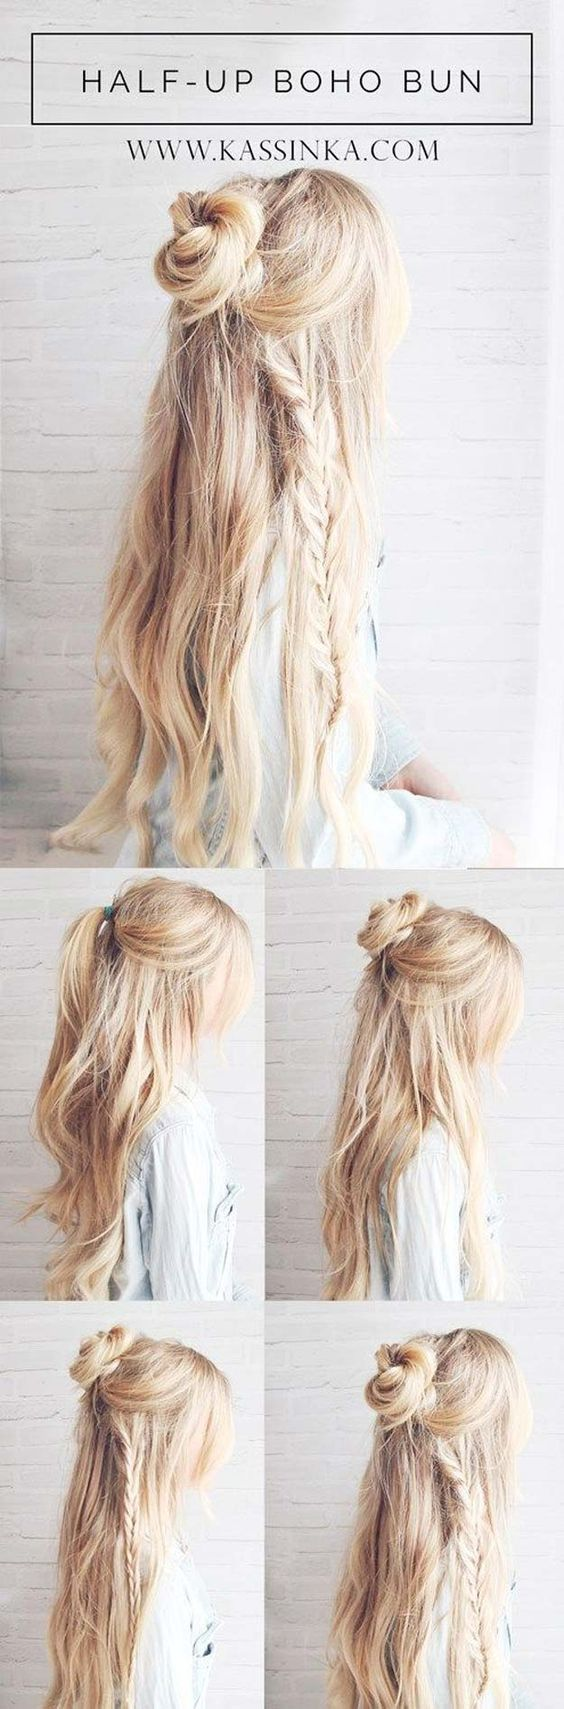 Best Hairstyles for Long Hair – Boho Braided Bun Hair – Step by Step Tutorials for Easy Curls, Updo, Half Up, Braids and Lazy Girl